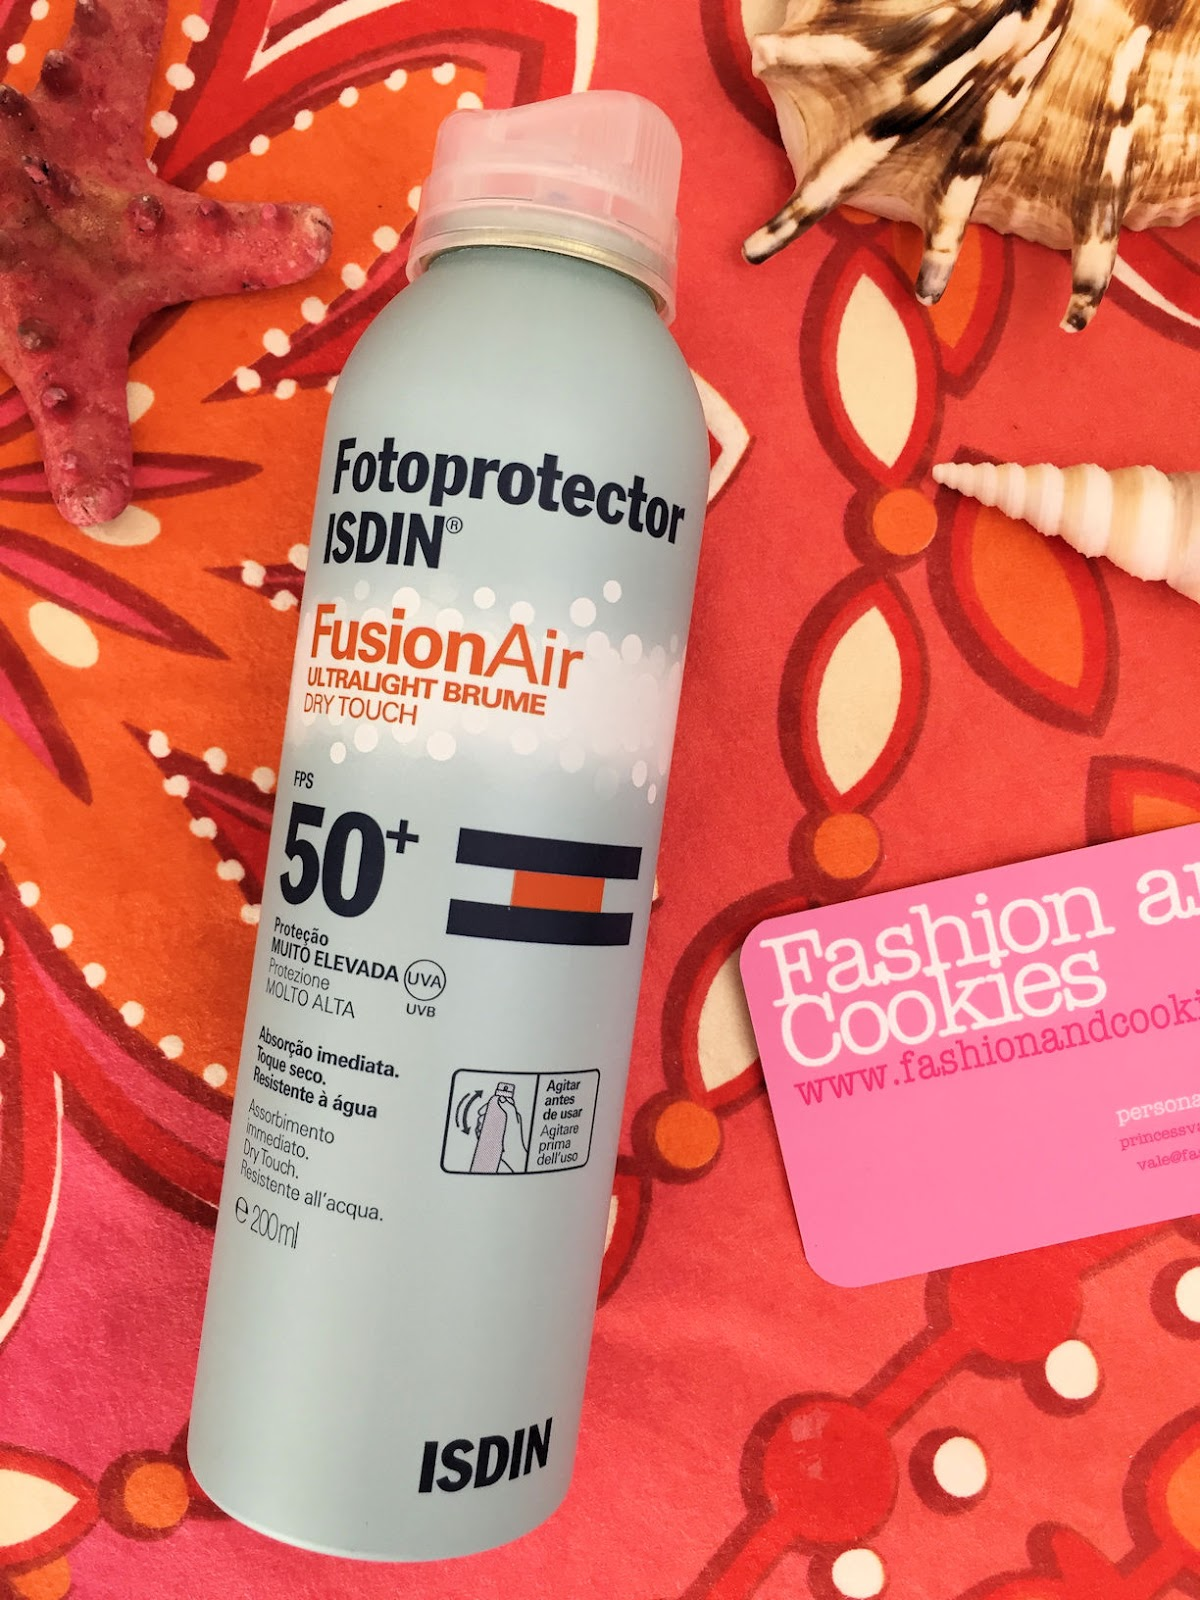 ISDIN Fotoprotector Fusion Air on Fashion and Cookies beauty blog, beauty blogger